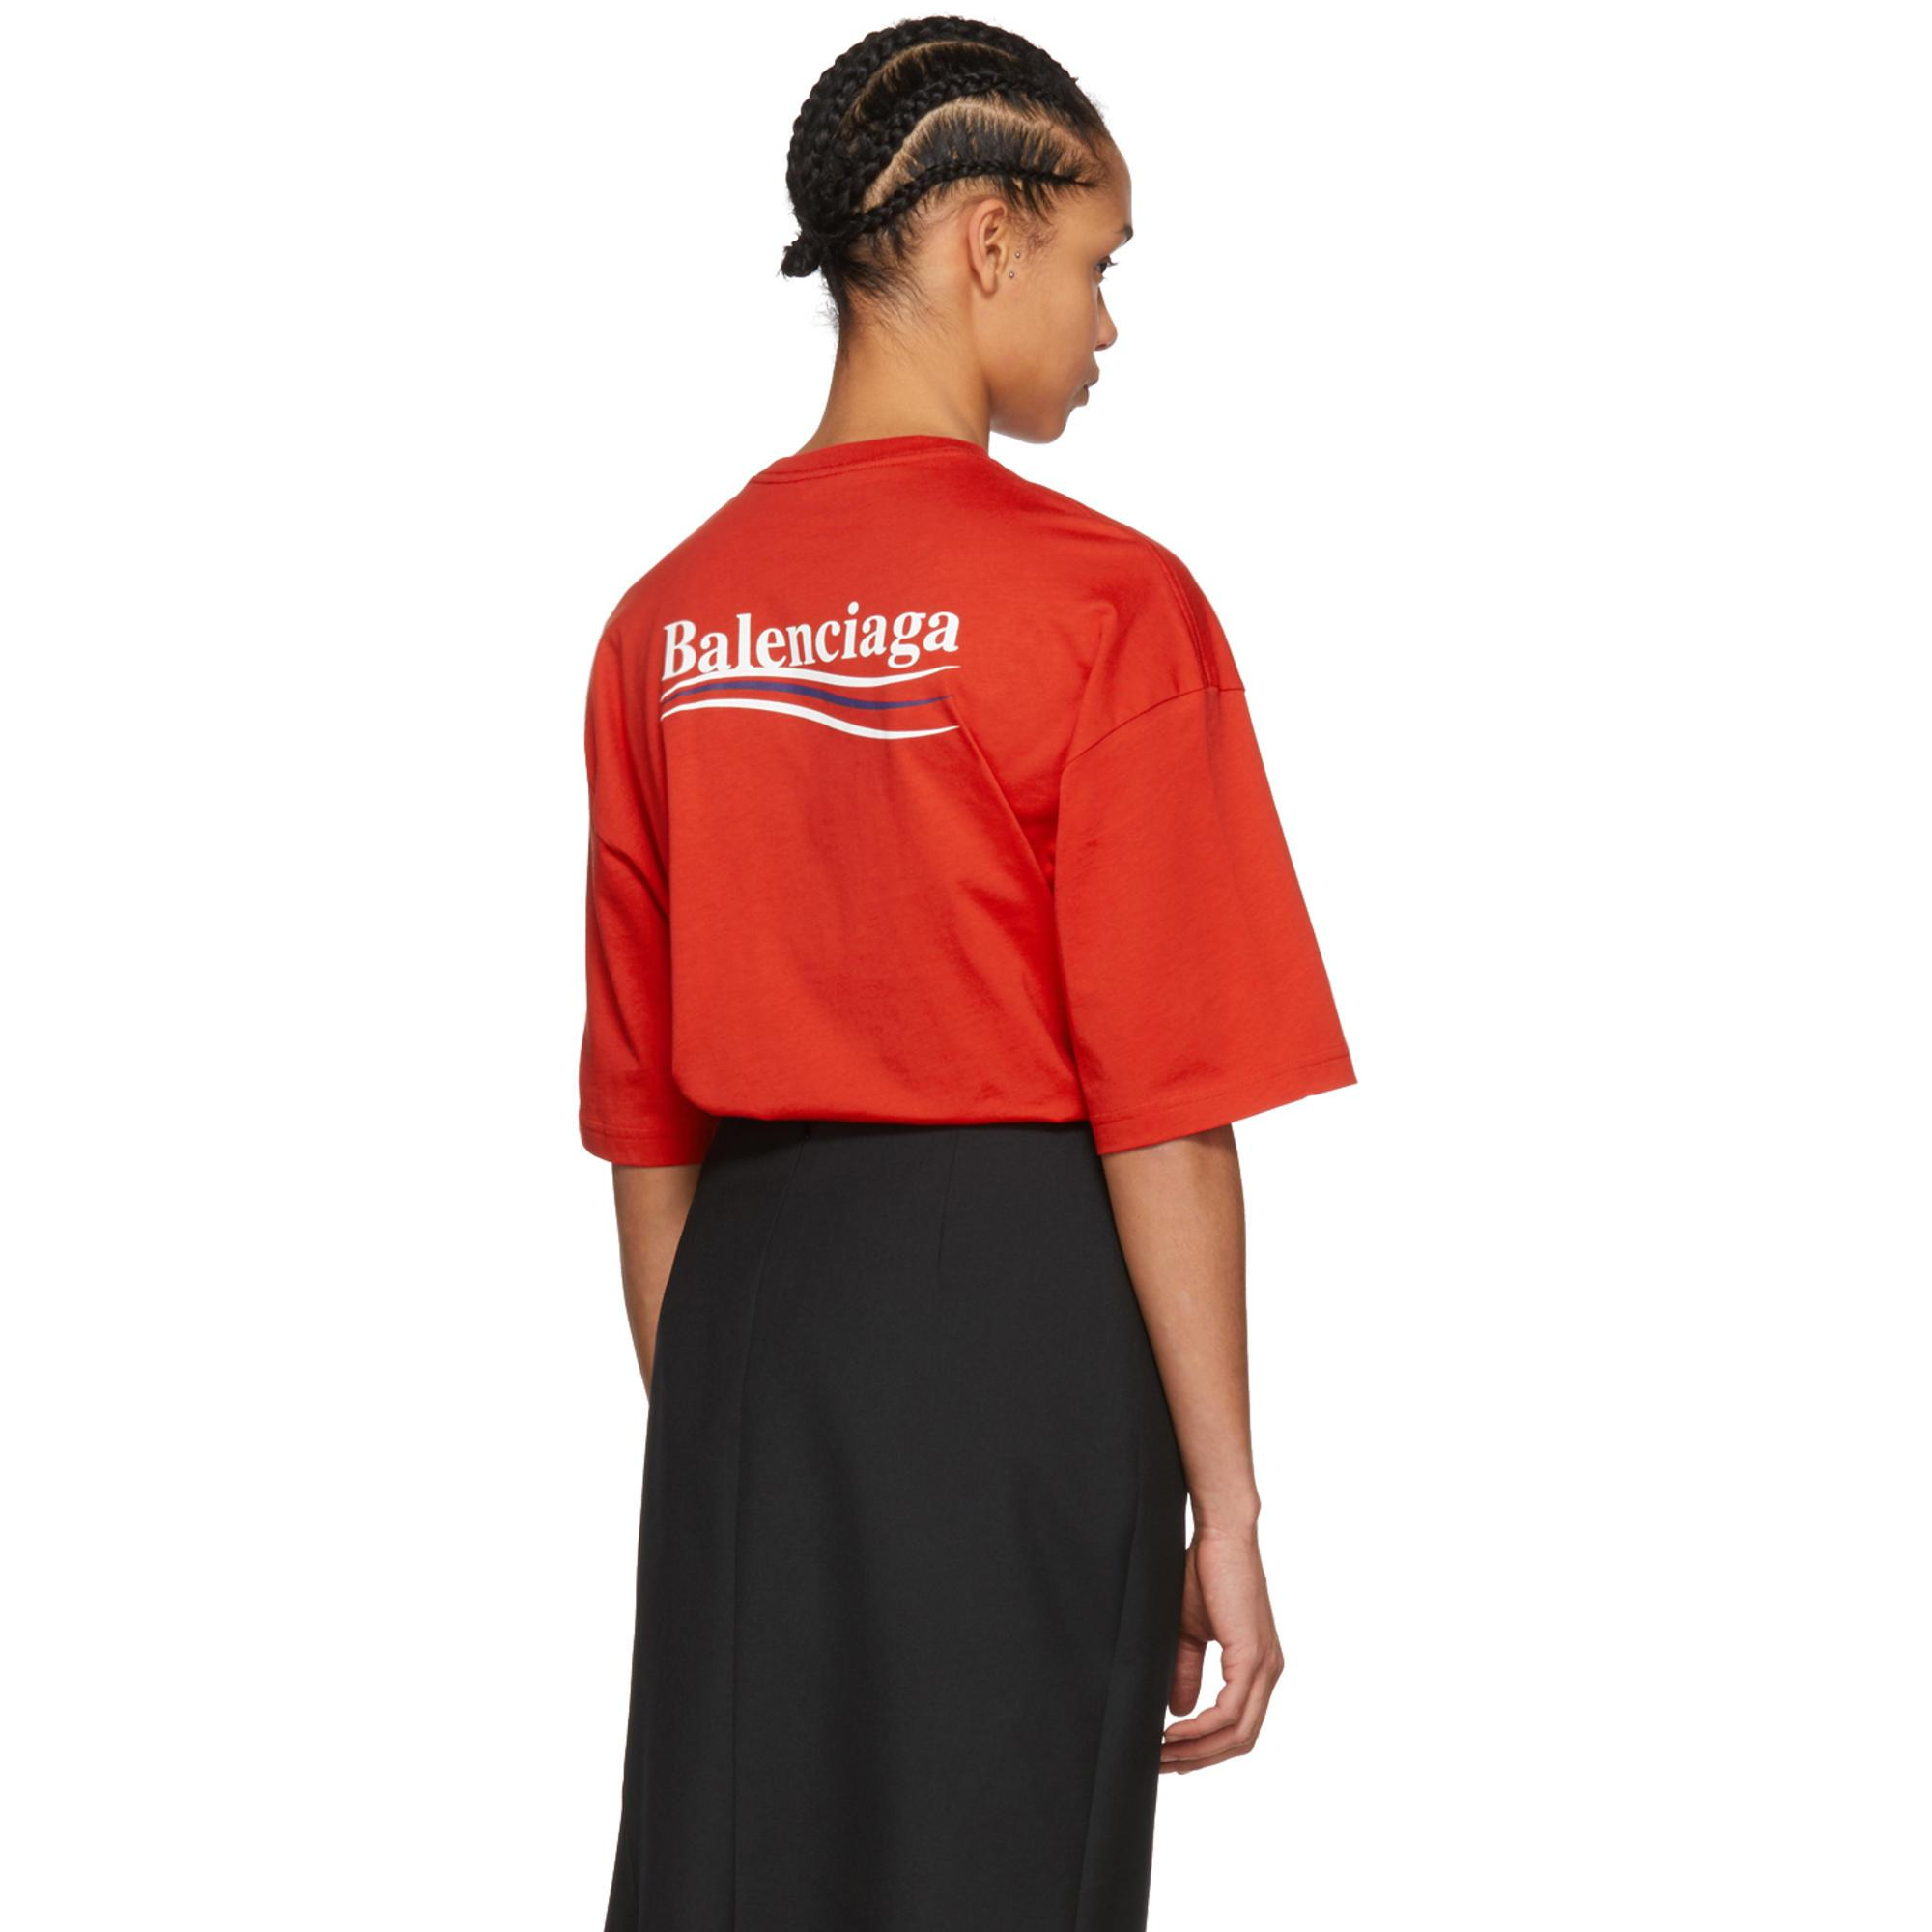 bf19e5a9397d Balenciaga Red Campaign T-shirt in Red - Lyst